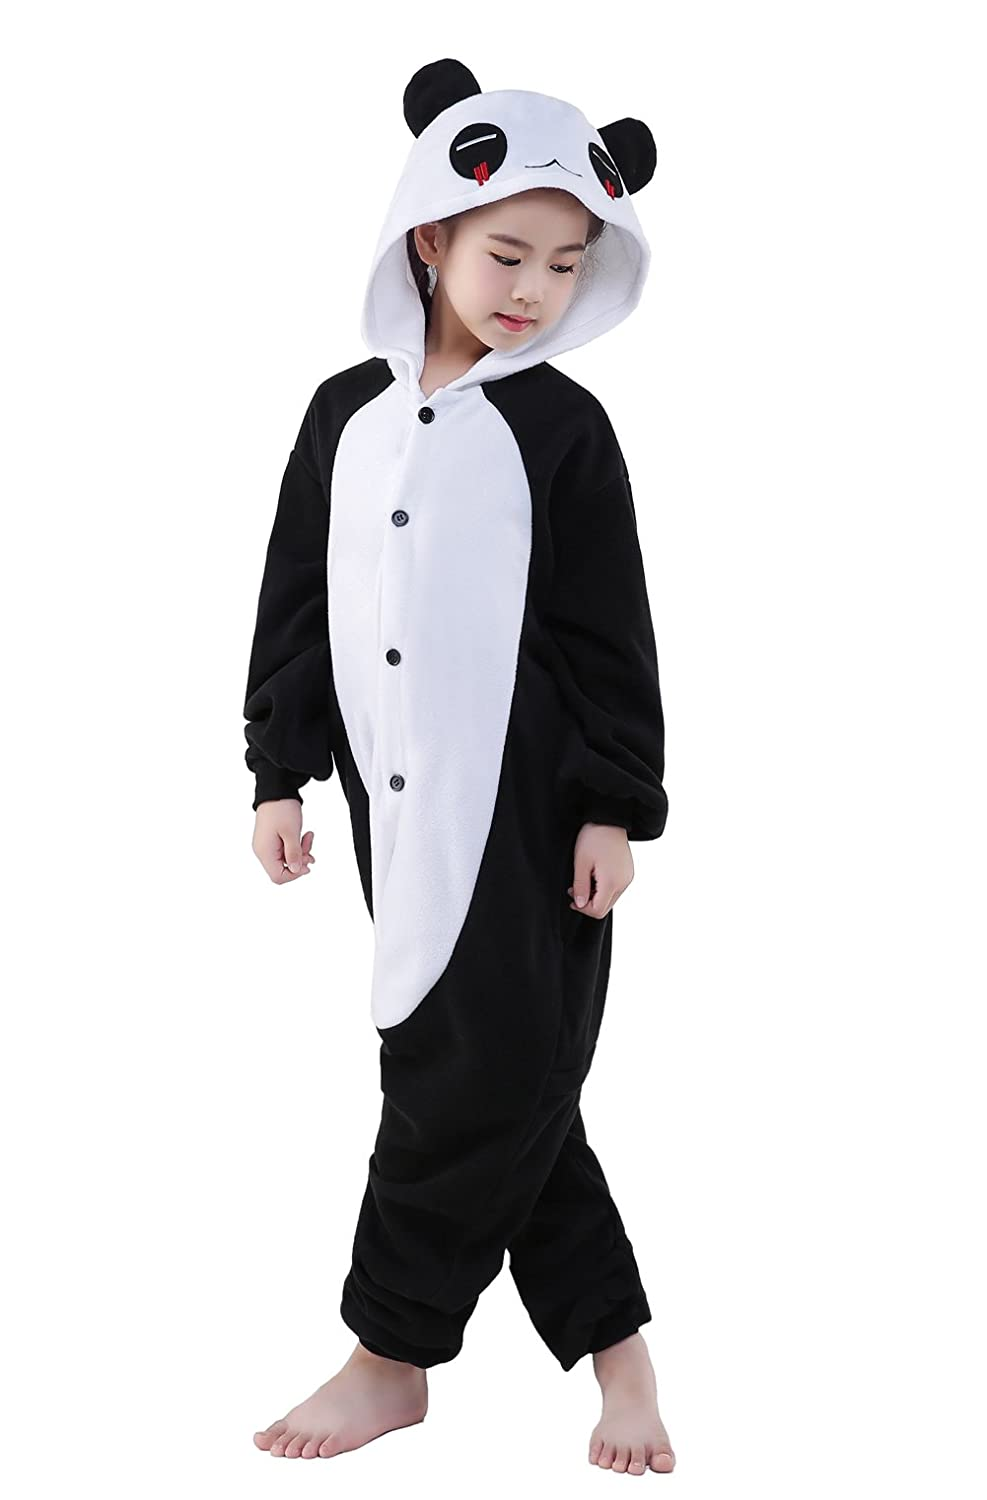 CANASOUR Christmas Polyster Kids Unisex Cosplay Cosplay Costume 105#, Red Eye Panda